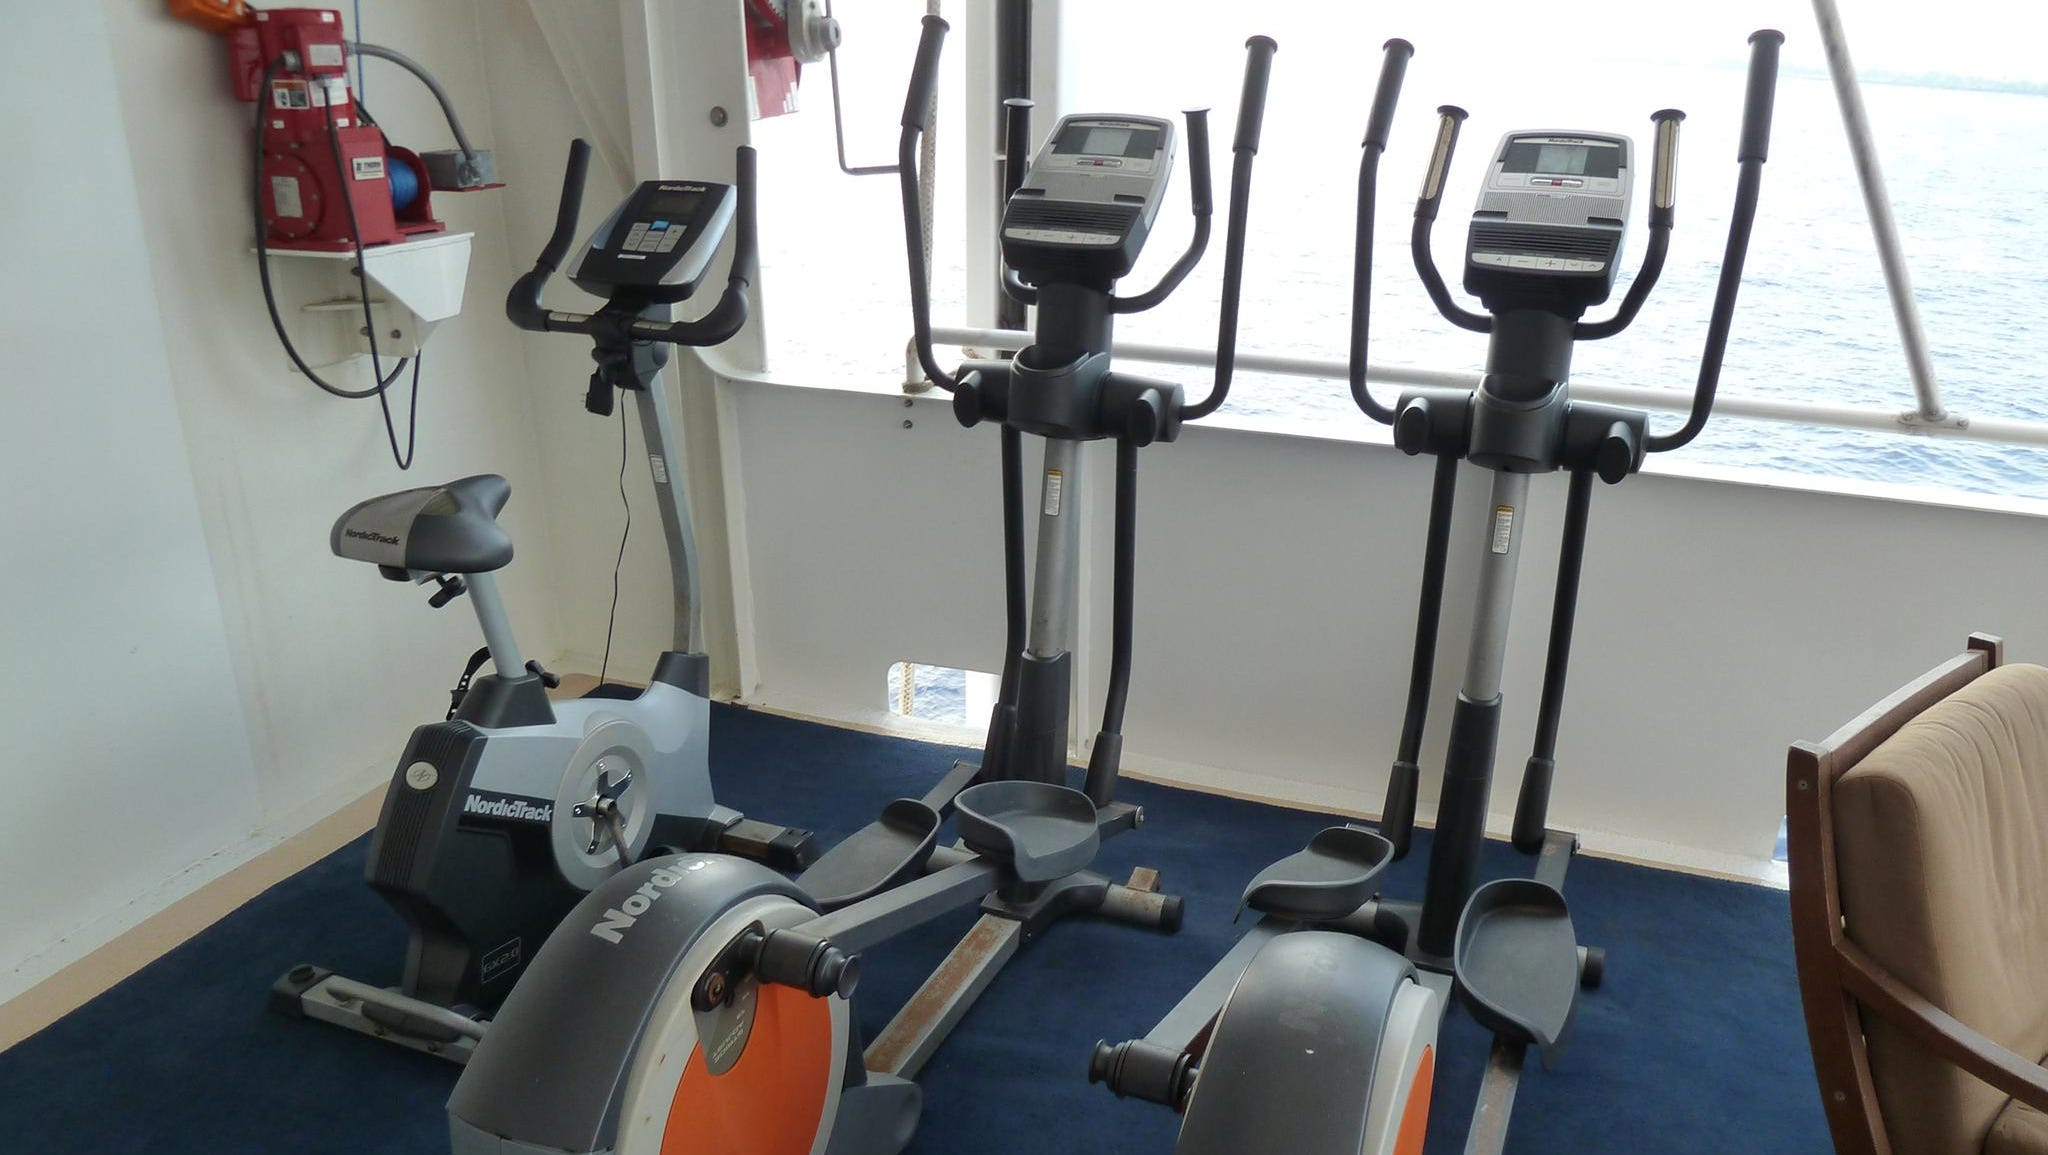 The Safari Explorer's uppermost level, Bridge Deck, has sheltered and open space that includes an exercise area with two ellipticals and a stationary bike. Every morning, early risers can partake of a pre-breakfast yoga session on deck.